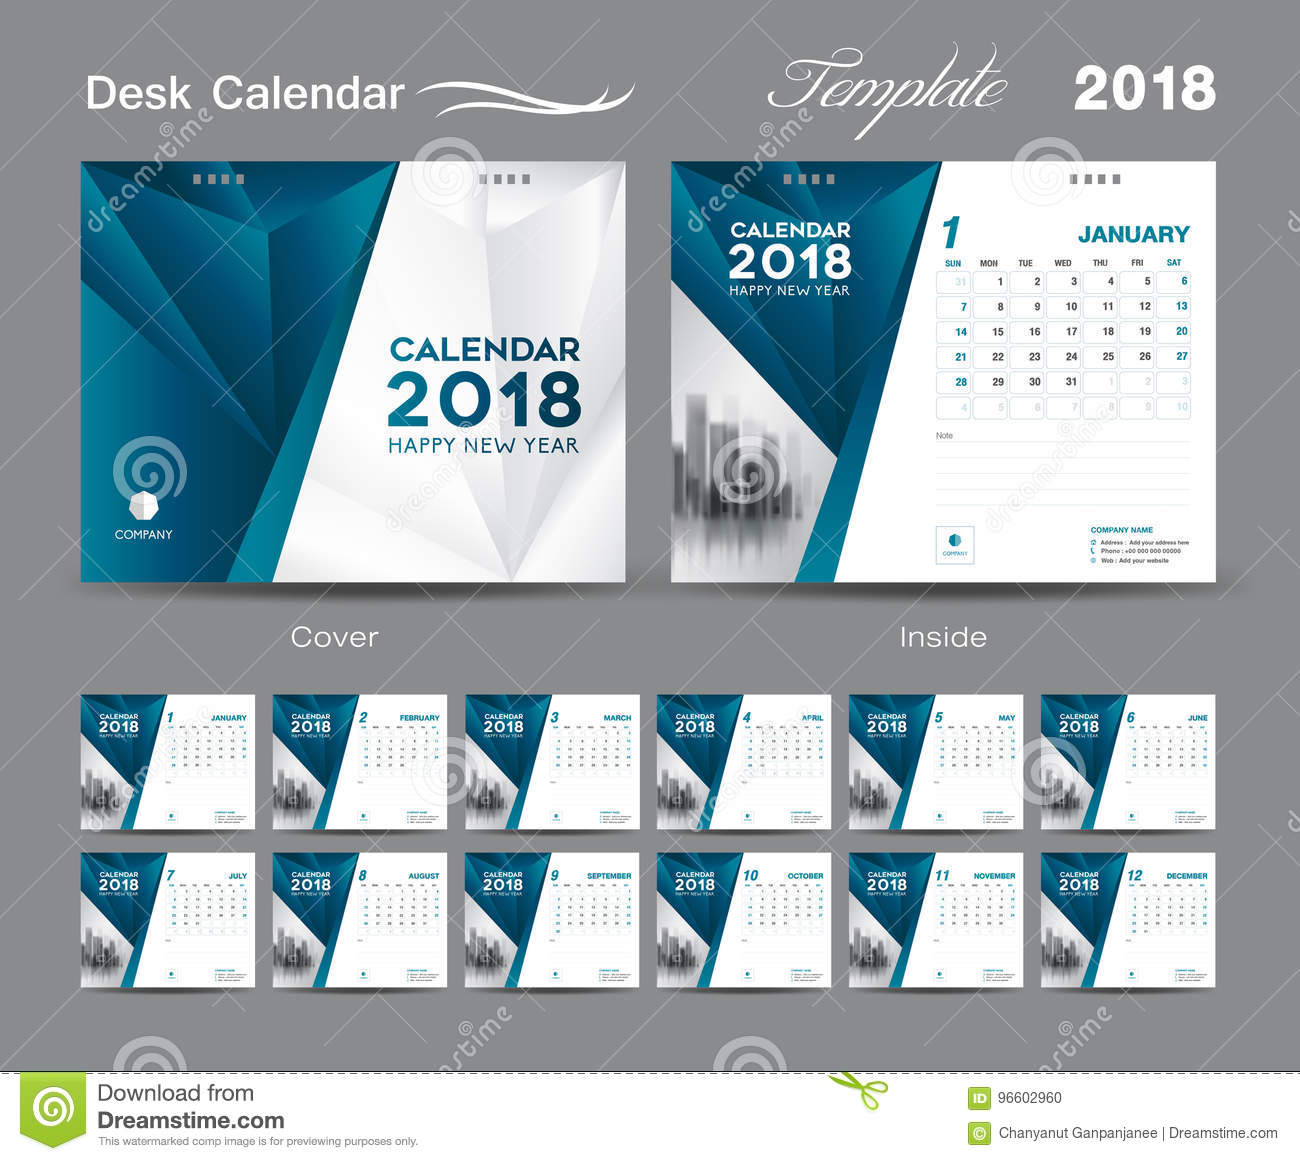 Corporate Calendar Theme Ideas : Corporate calendar template image collections wedding